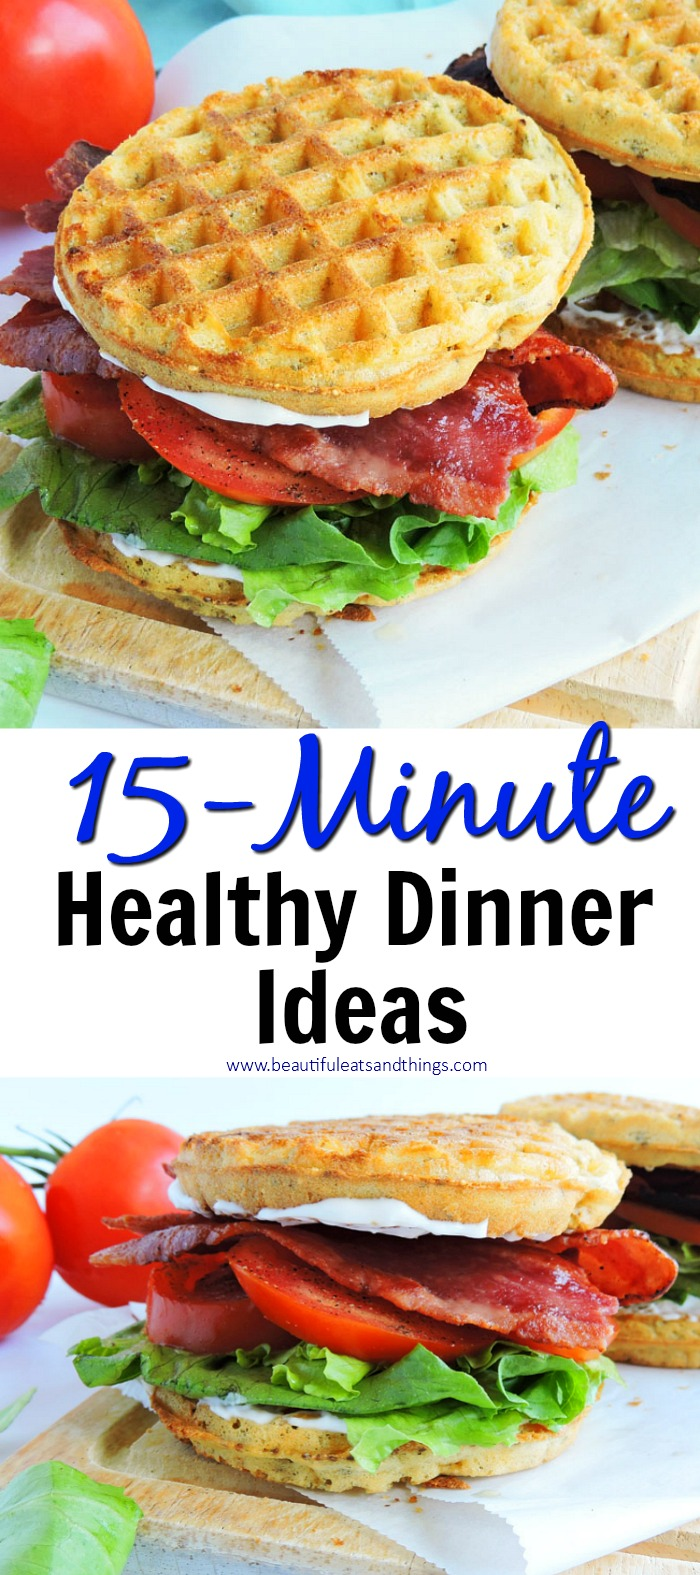 Tasty Healthy Dinner Meals Made in 15 Minutes or Less